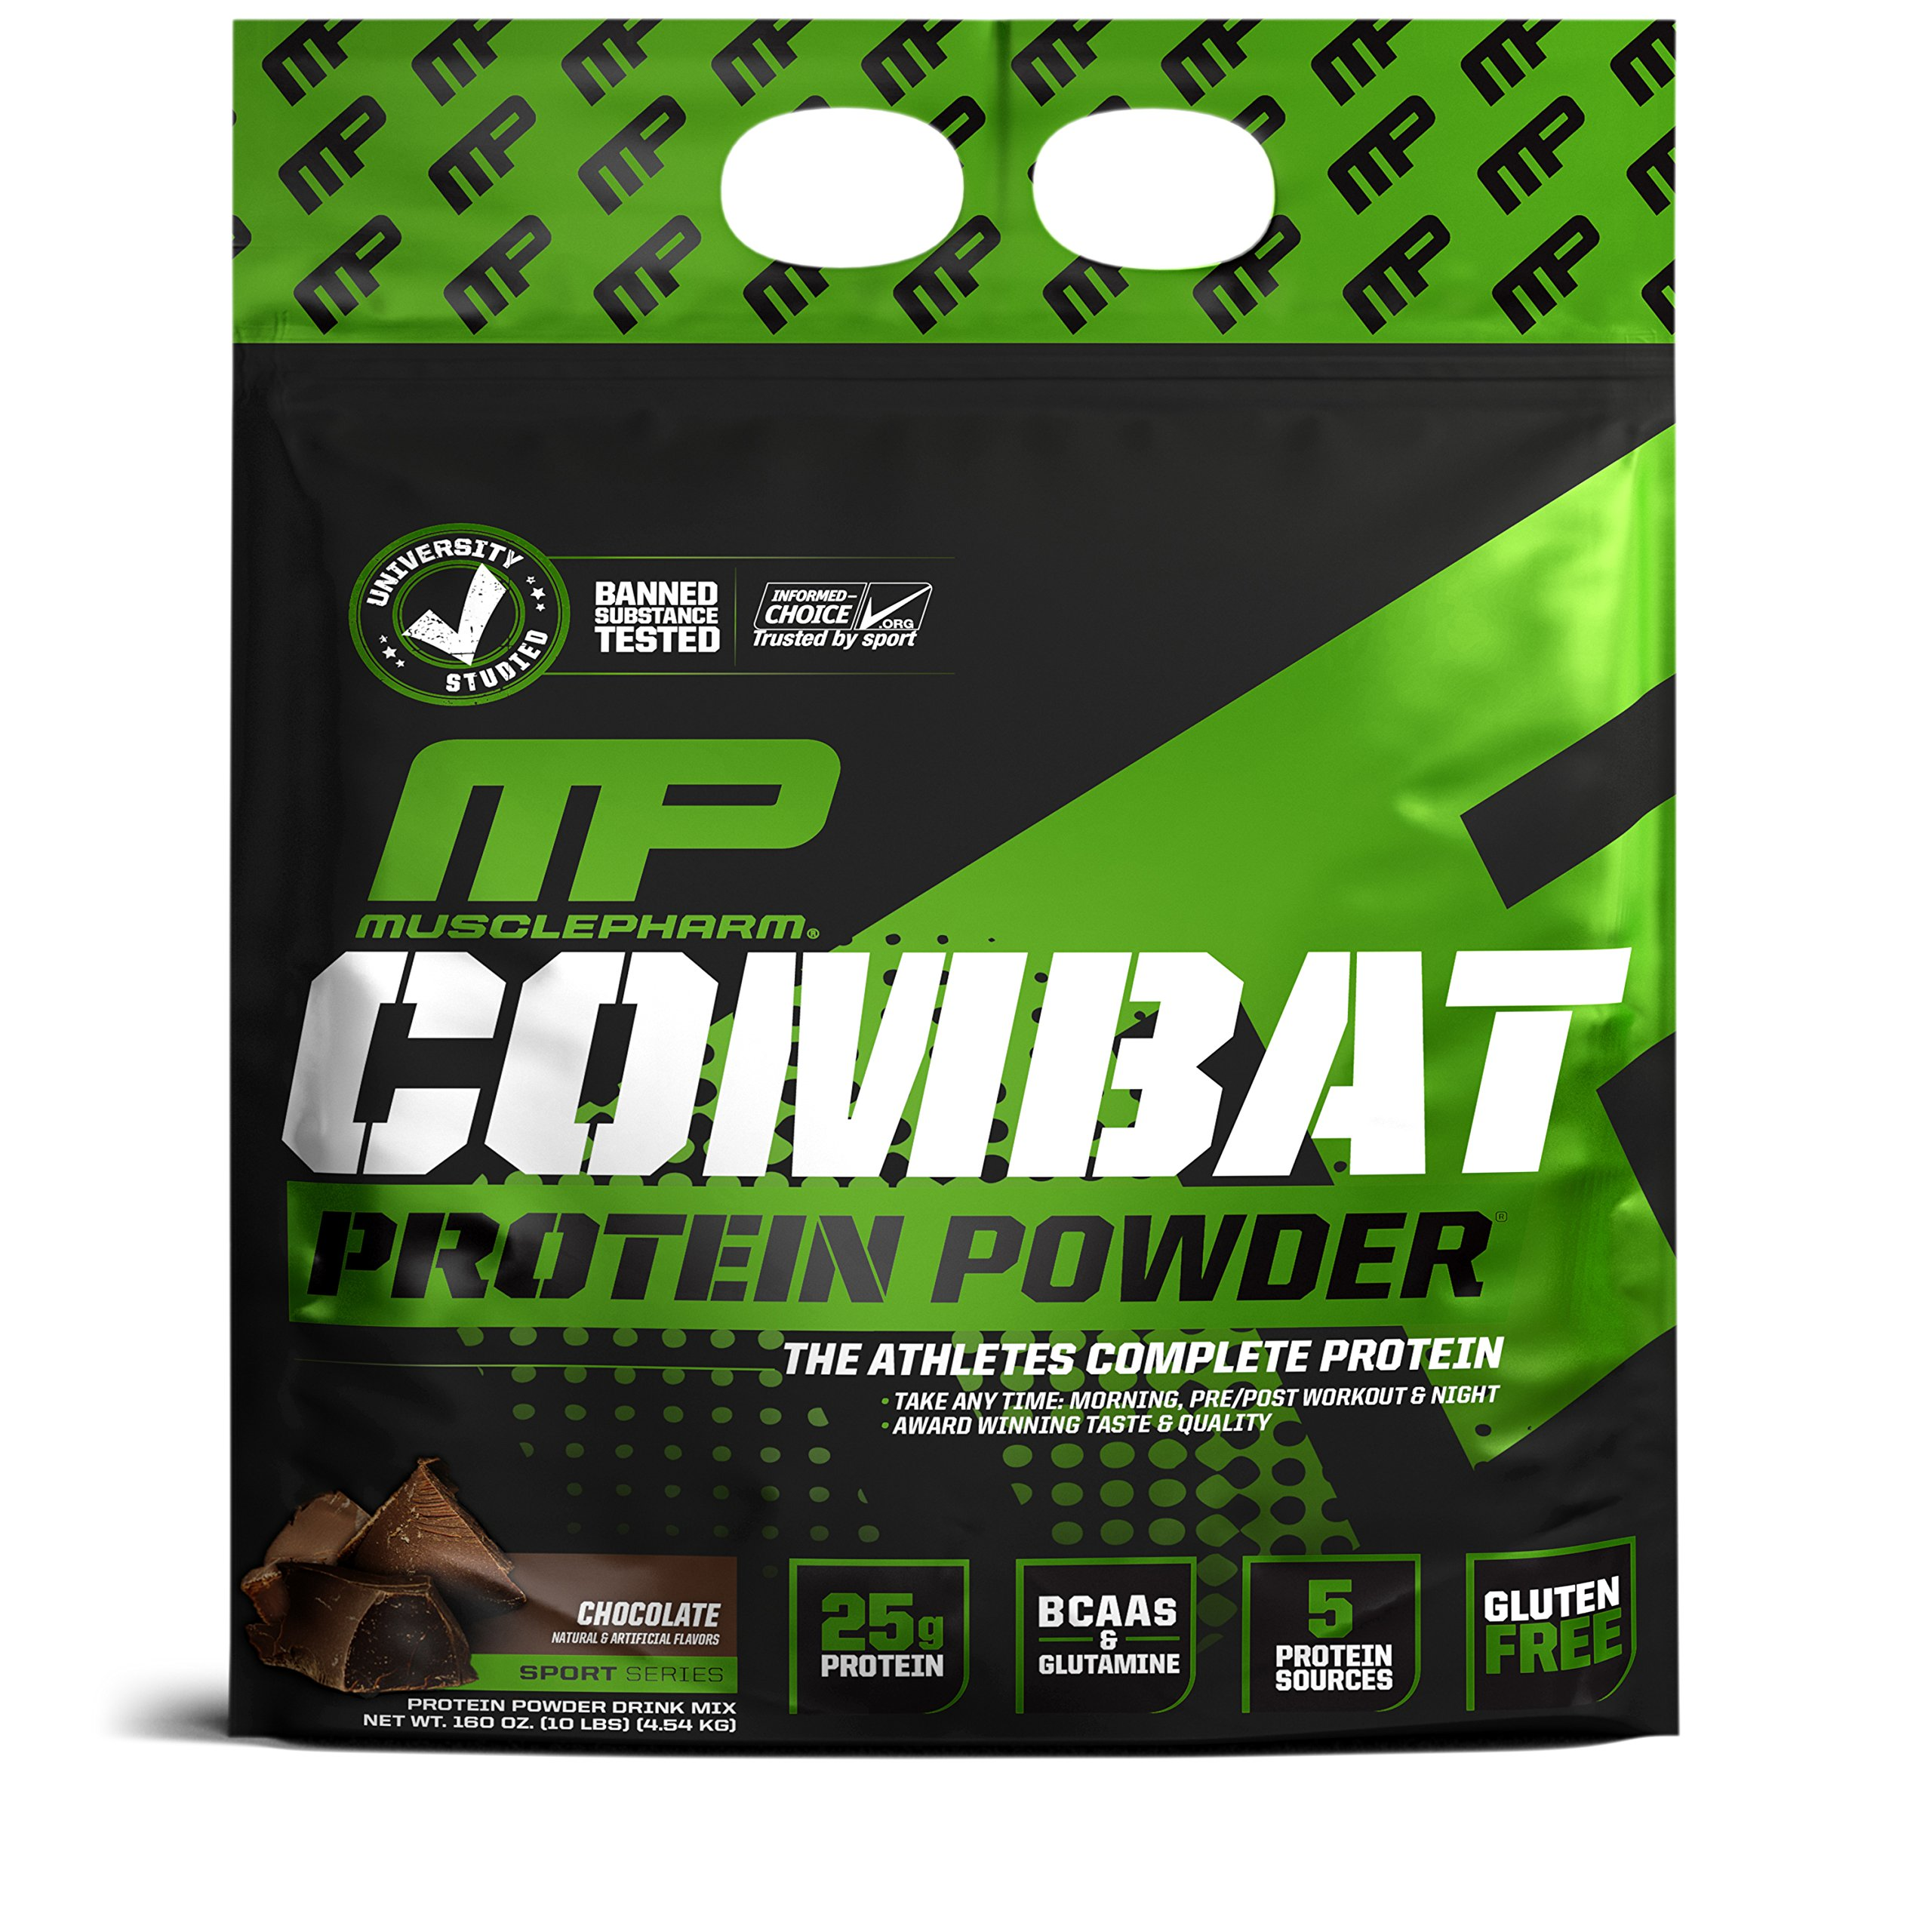 MusclePharm Combat Protein Powder, Essential Whey Protein Powder, Isolate Whey Protein, Casein and Egg Protein with BCAAs and Glutamine for Recovery, Chocolate Milk, 10-Pound, 129 Servings by Muscle Pharm (Image #1)